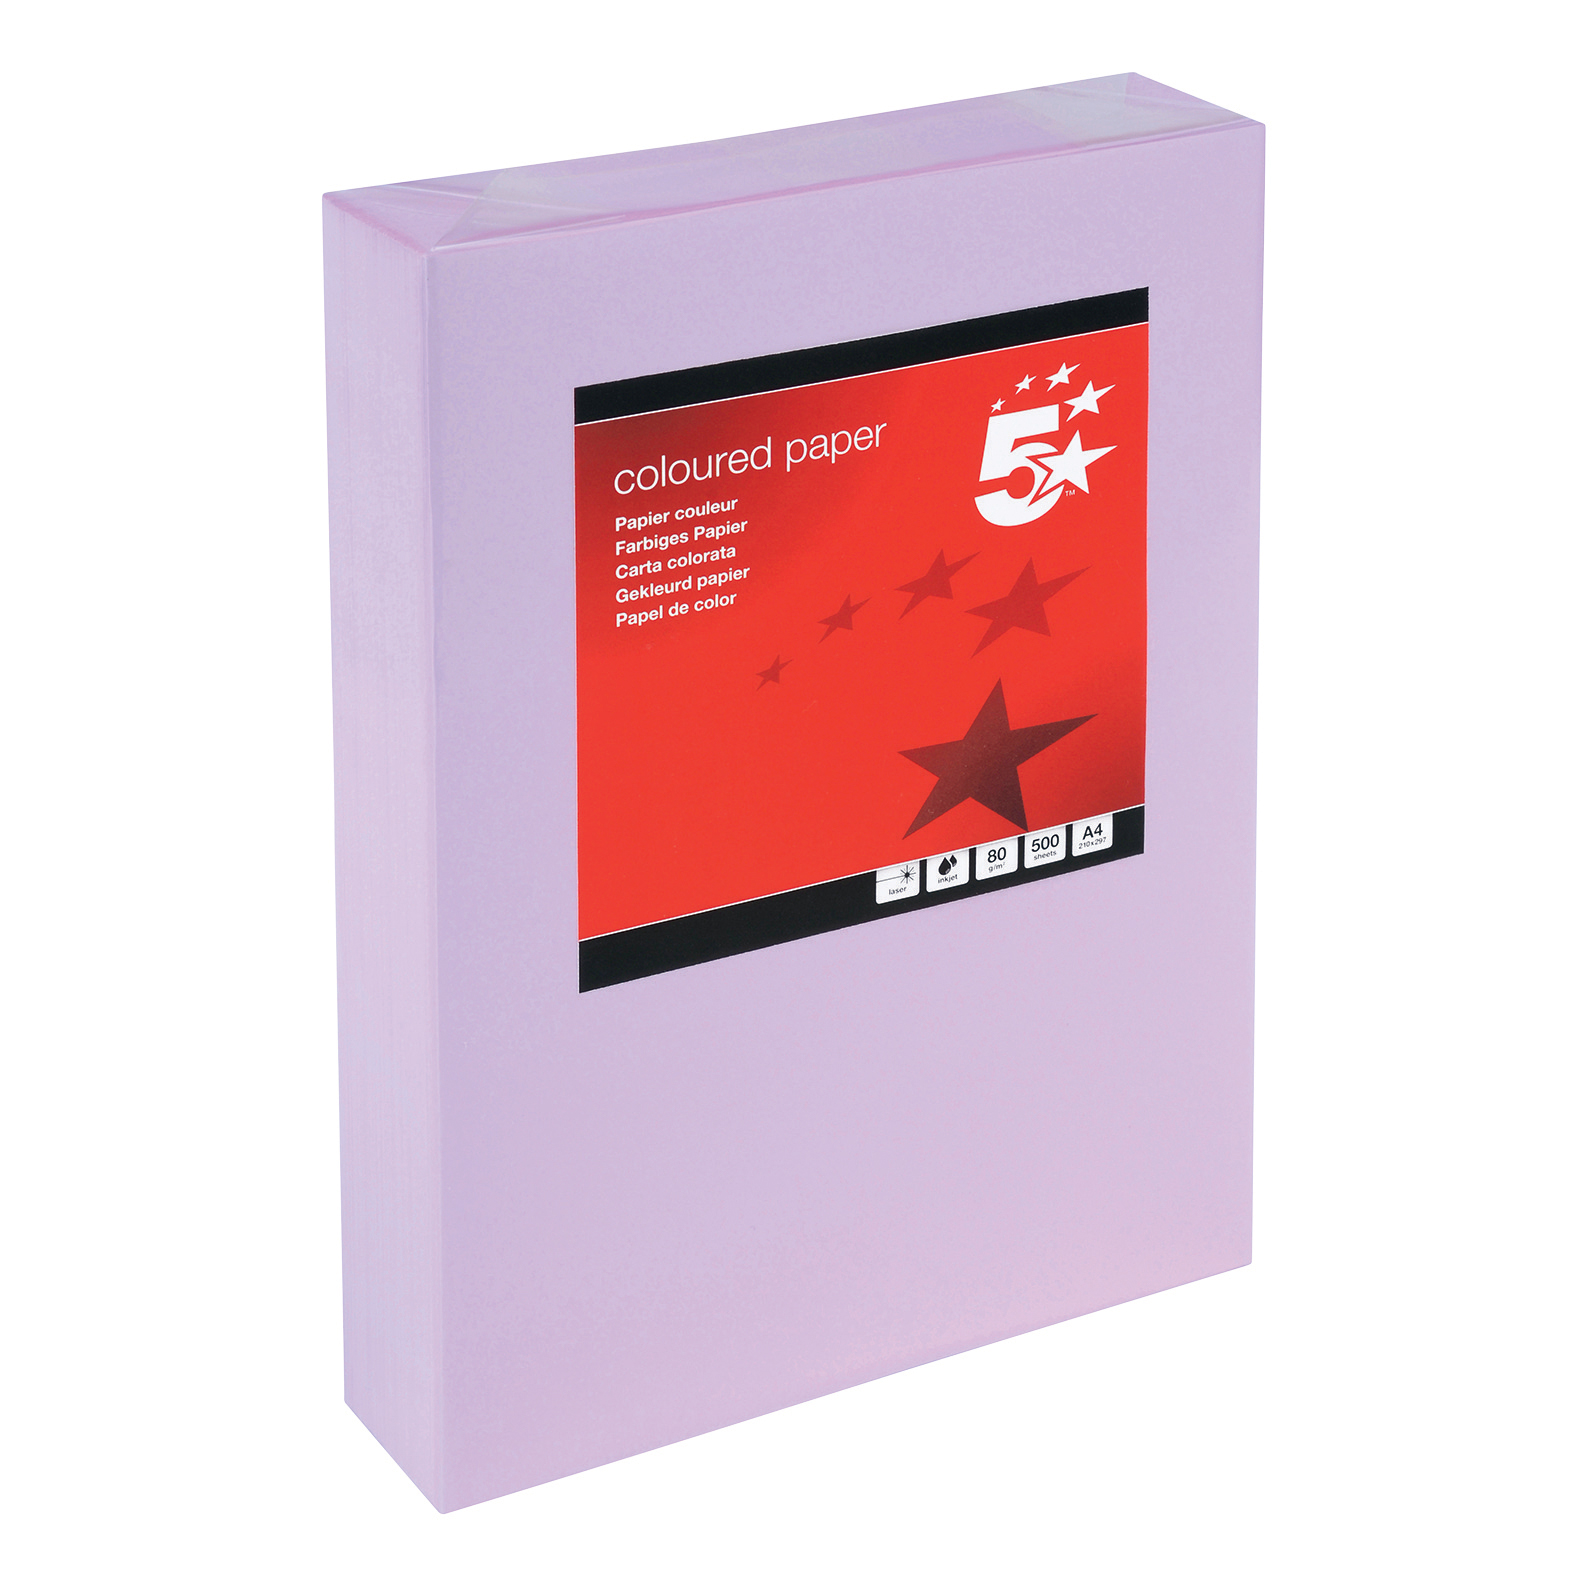 5 Star Coloured Copier Paper Multifunctional Ream-Wrapped 80gsm A4 Medium Violet [500 Sheets]